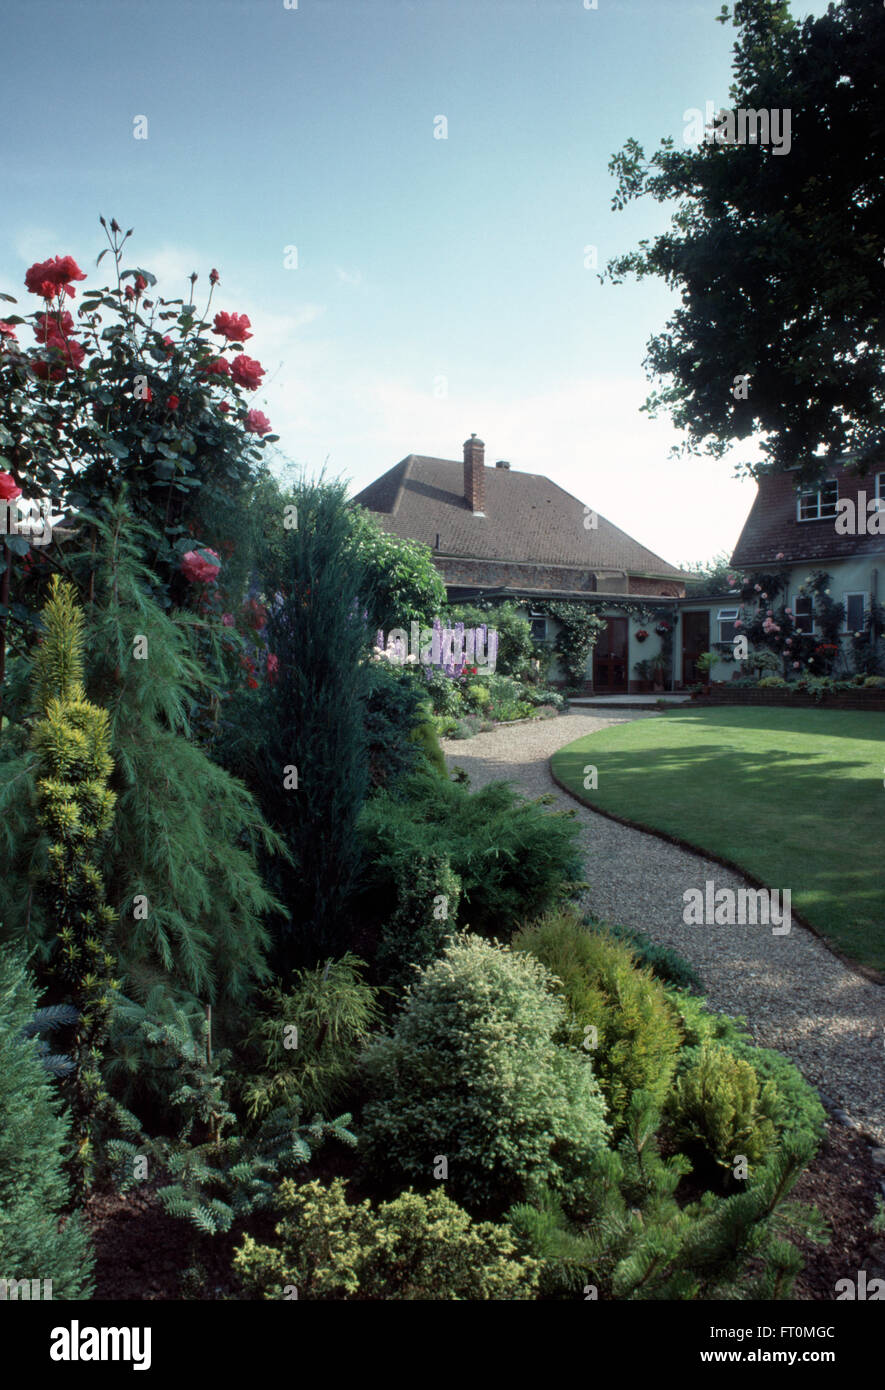 Conifers and low growing shrubs in border beside path in garden of suburban bungalow - Stock Image